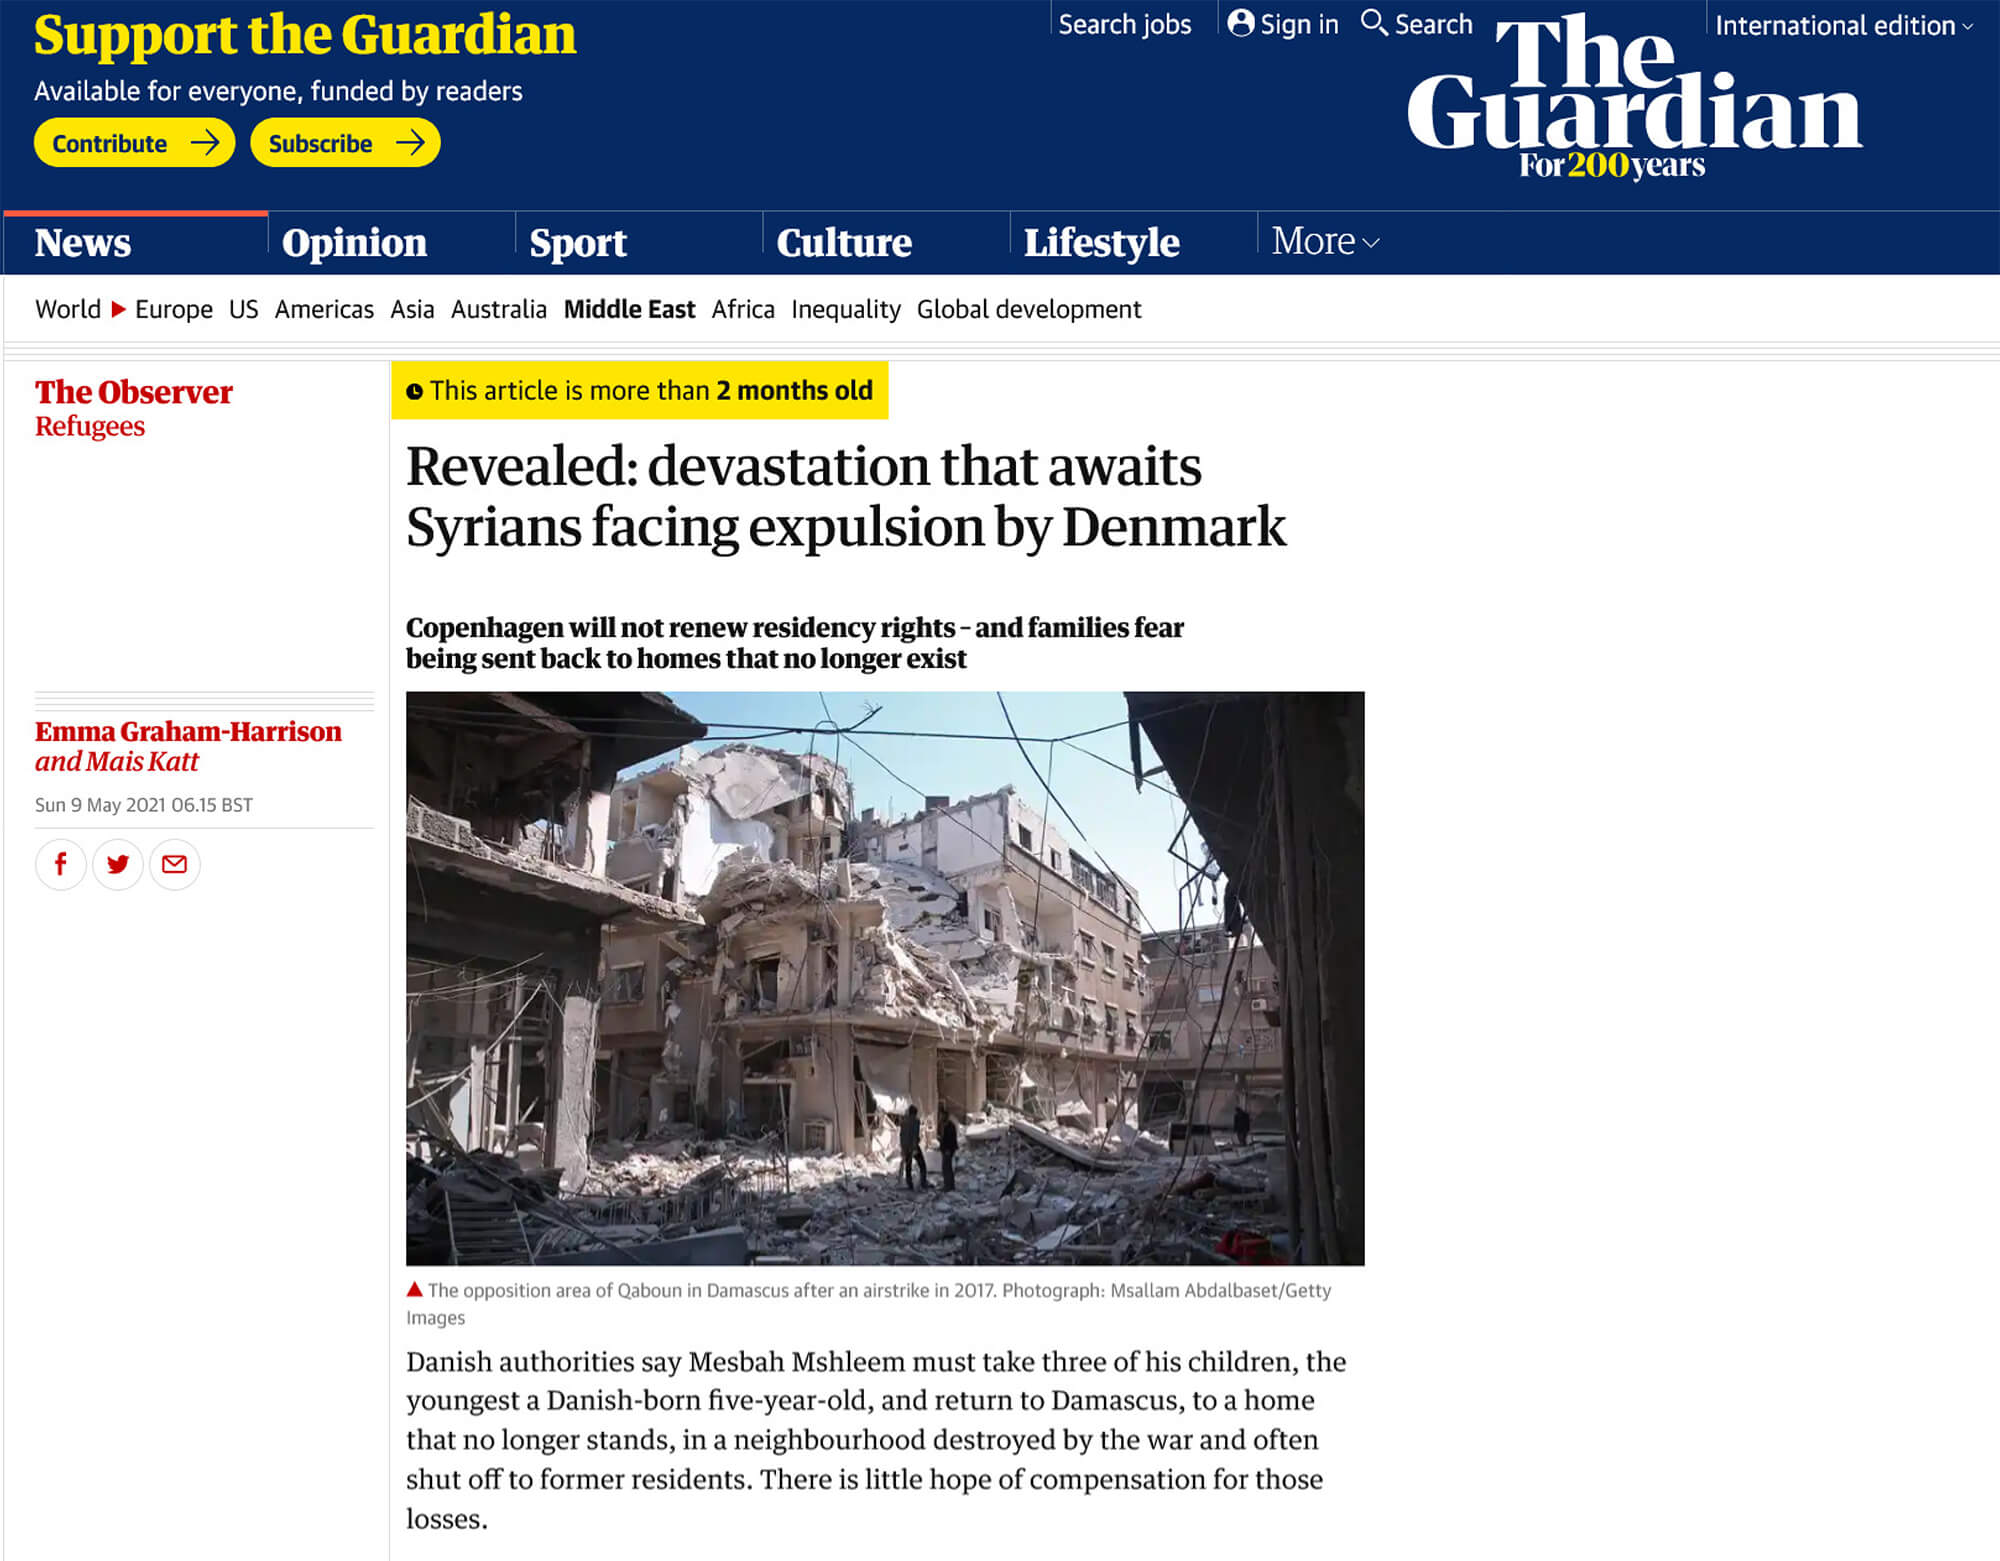 Screengrab from the Guardian: Revealed: devestation that awaits Syrians facing expulsion by Denmark